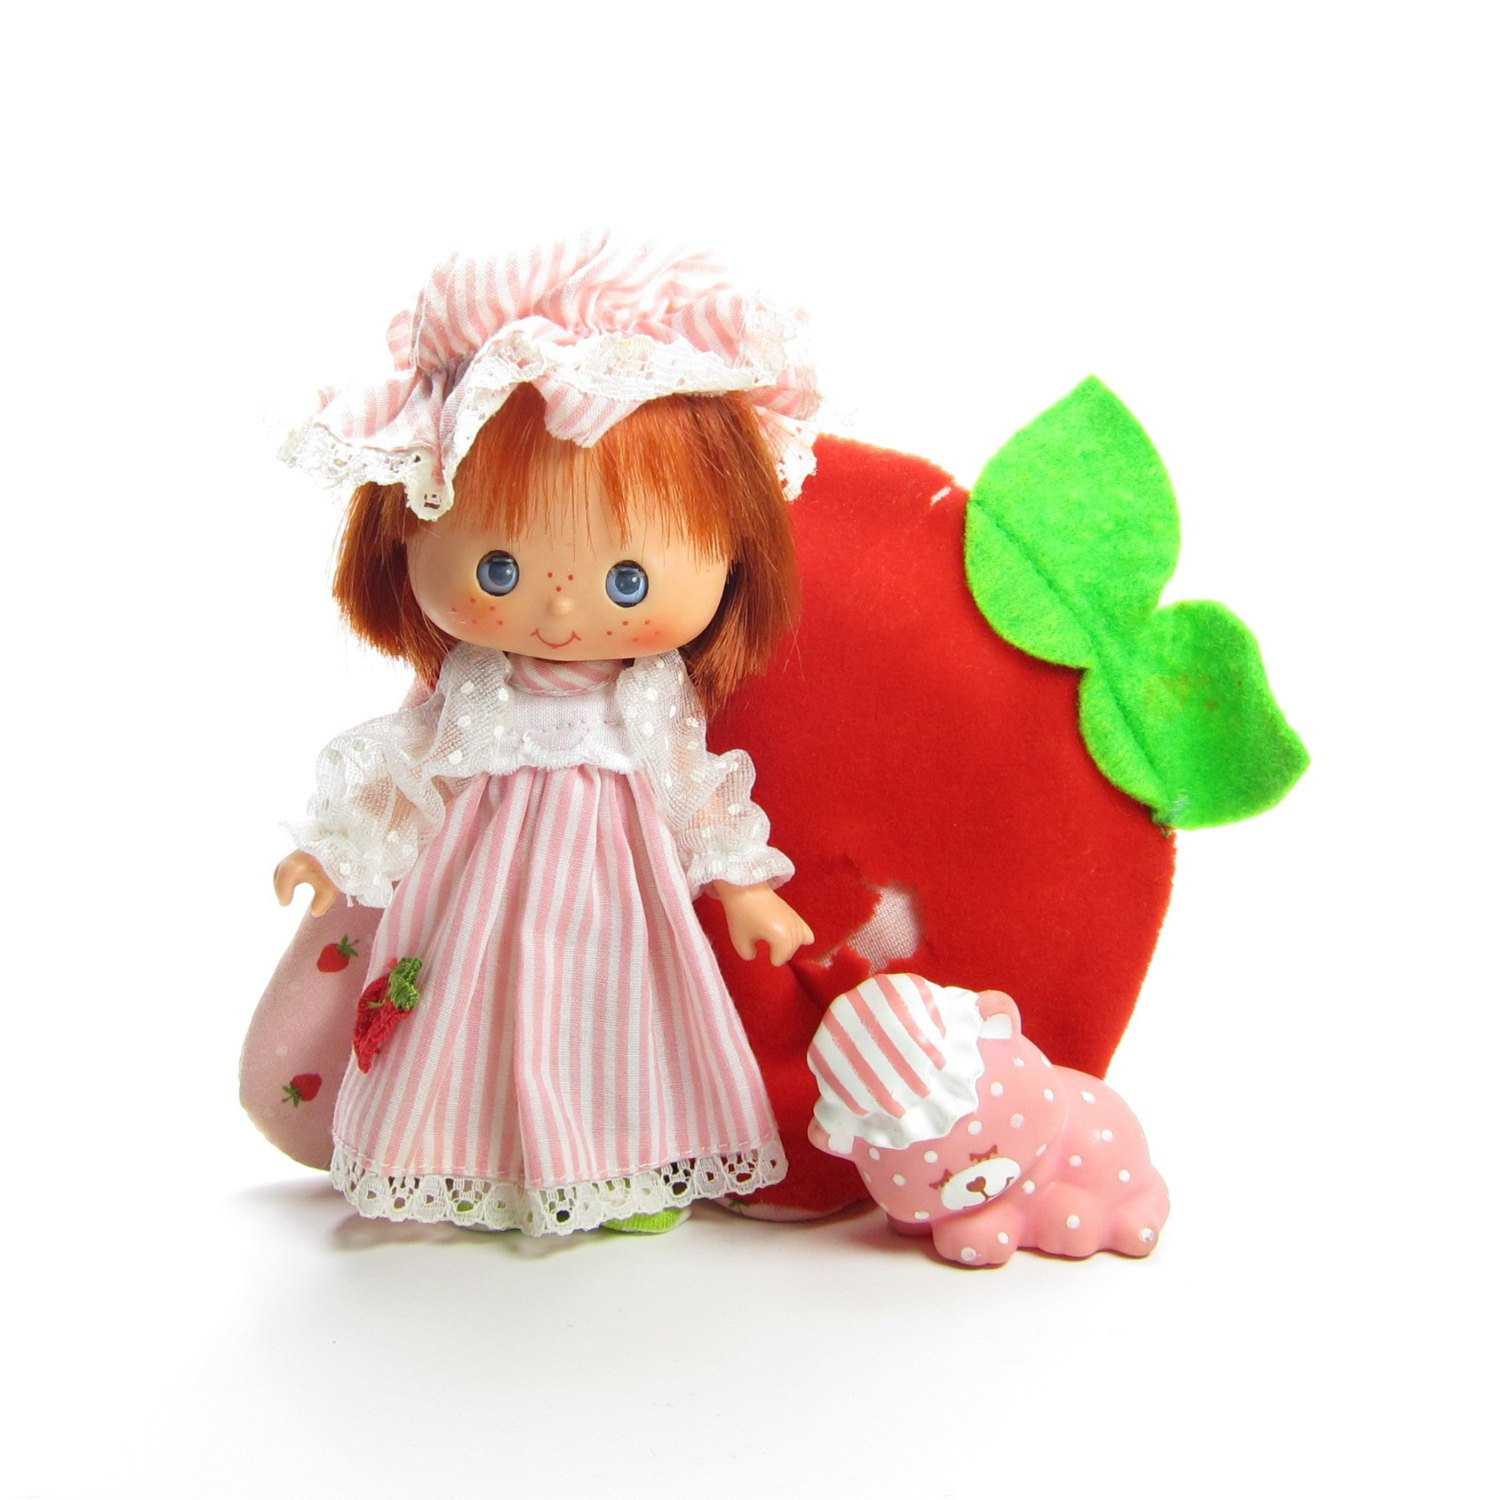 Strawberry Shortcake Doll  Sweet Sleeper Strawberry Shortcake Vintage Doll with